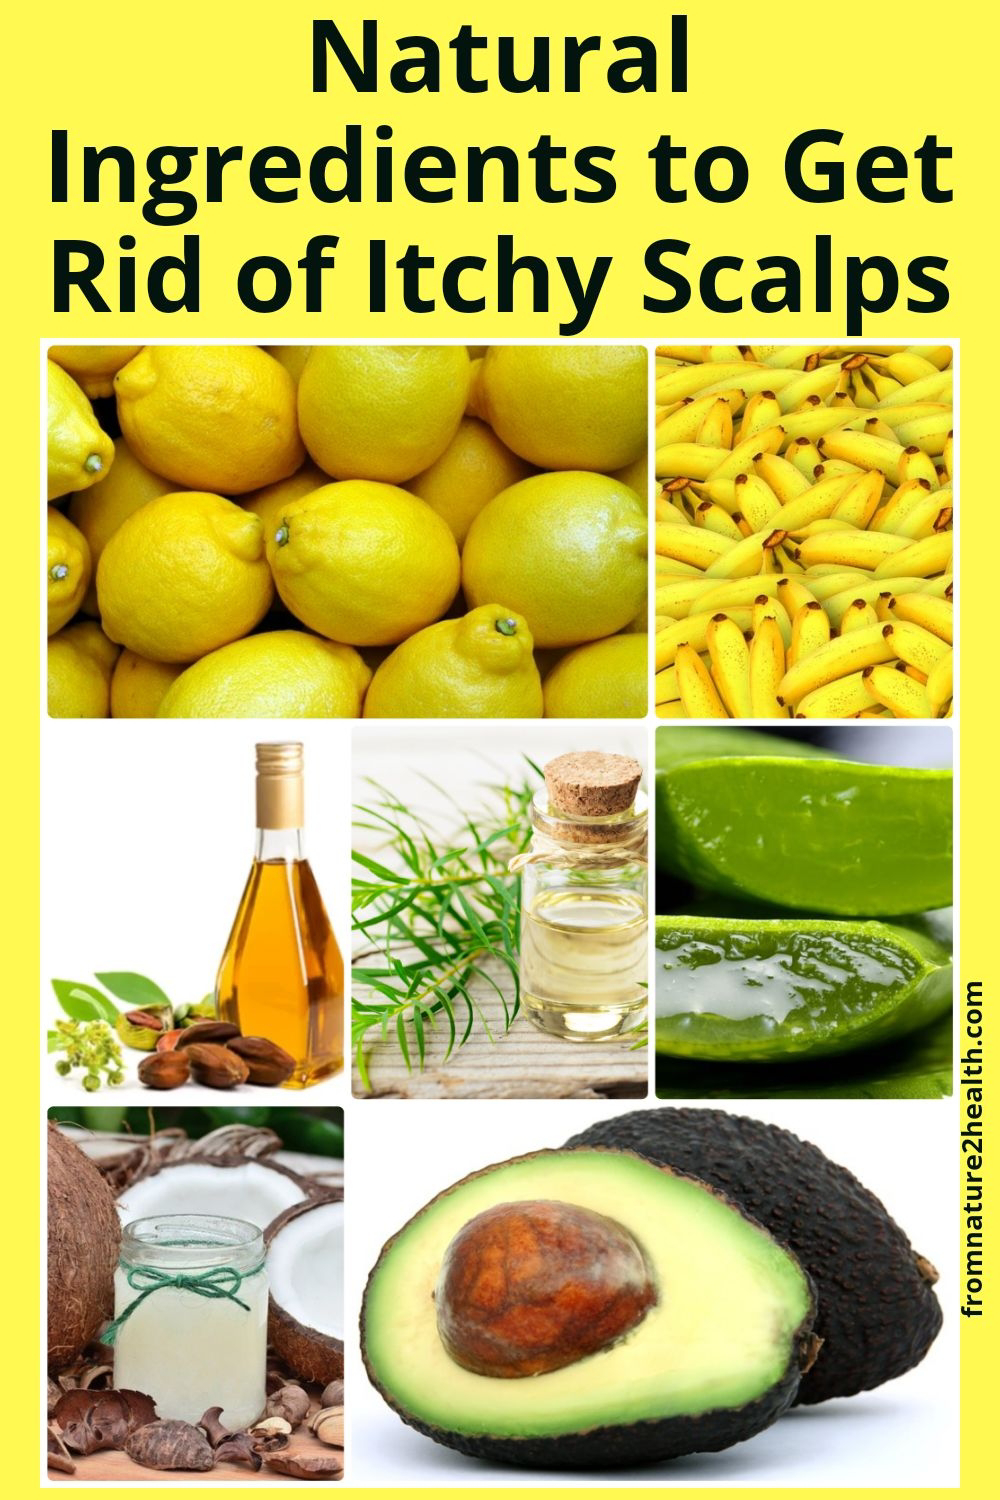 Natural Ingredients to Get Rid of Itchy Scalps